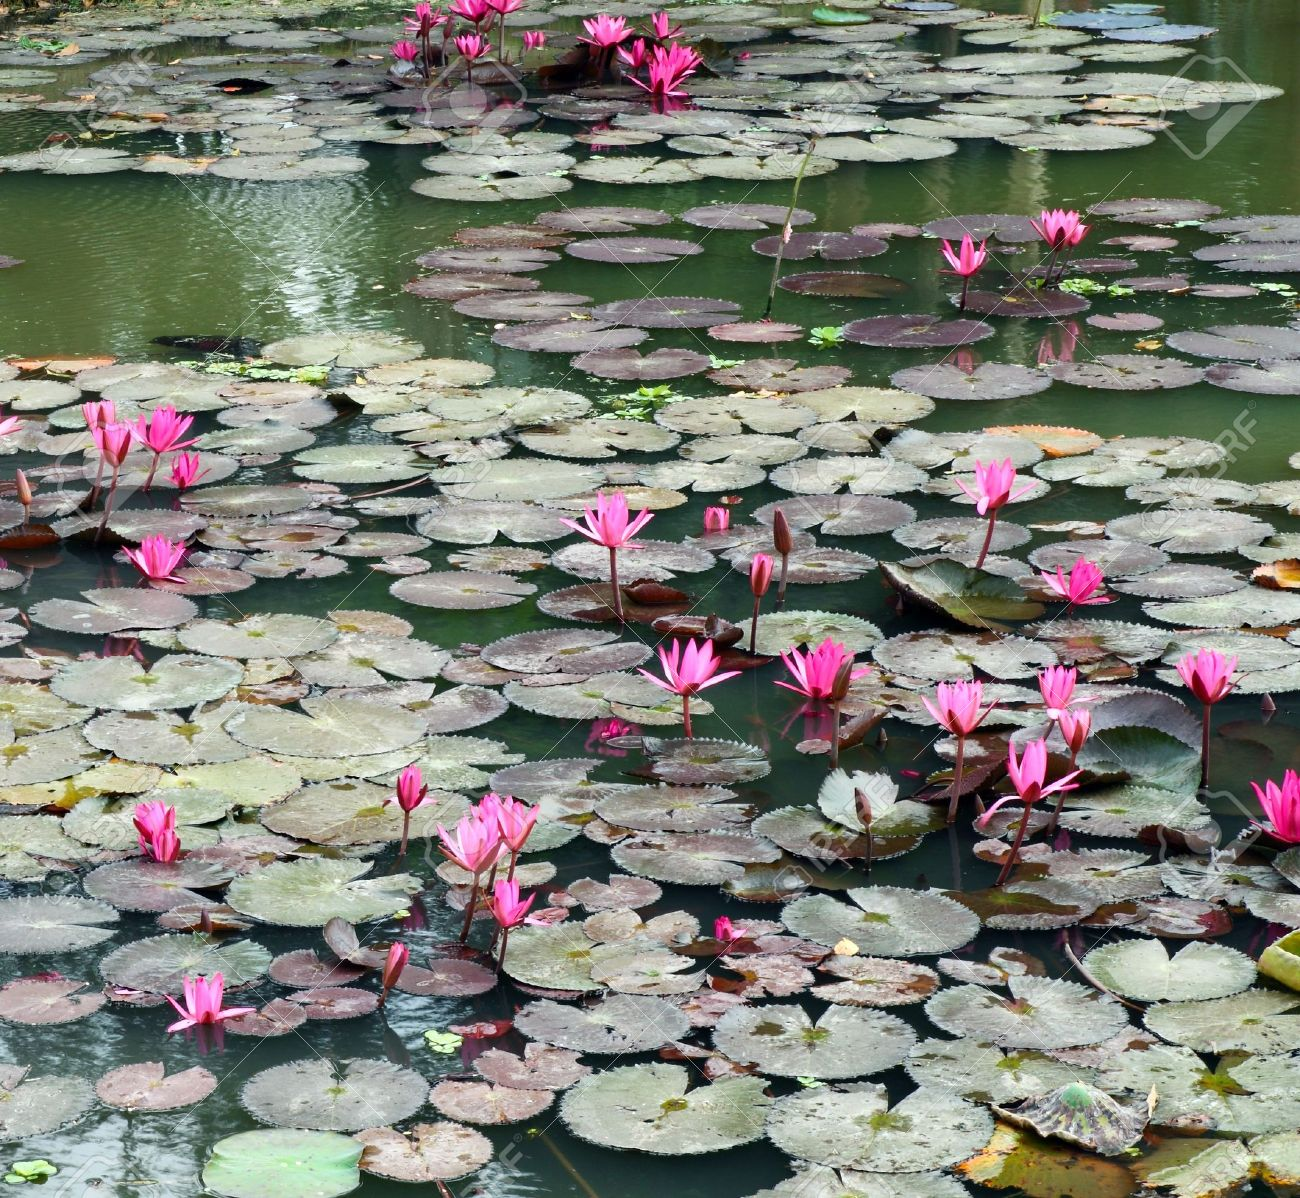 Lotus pond scenery stock photo picture and royalty free image lotus pond scenery stock photo 11780363 izmirmasajfo